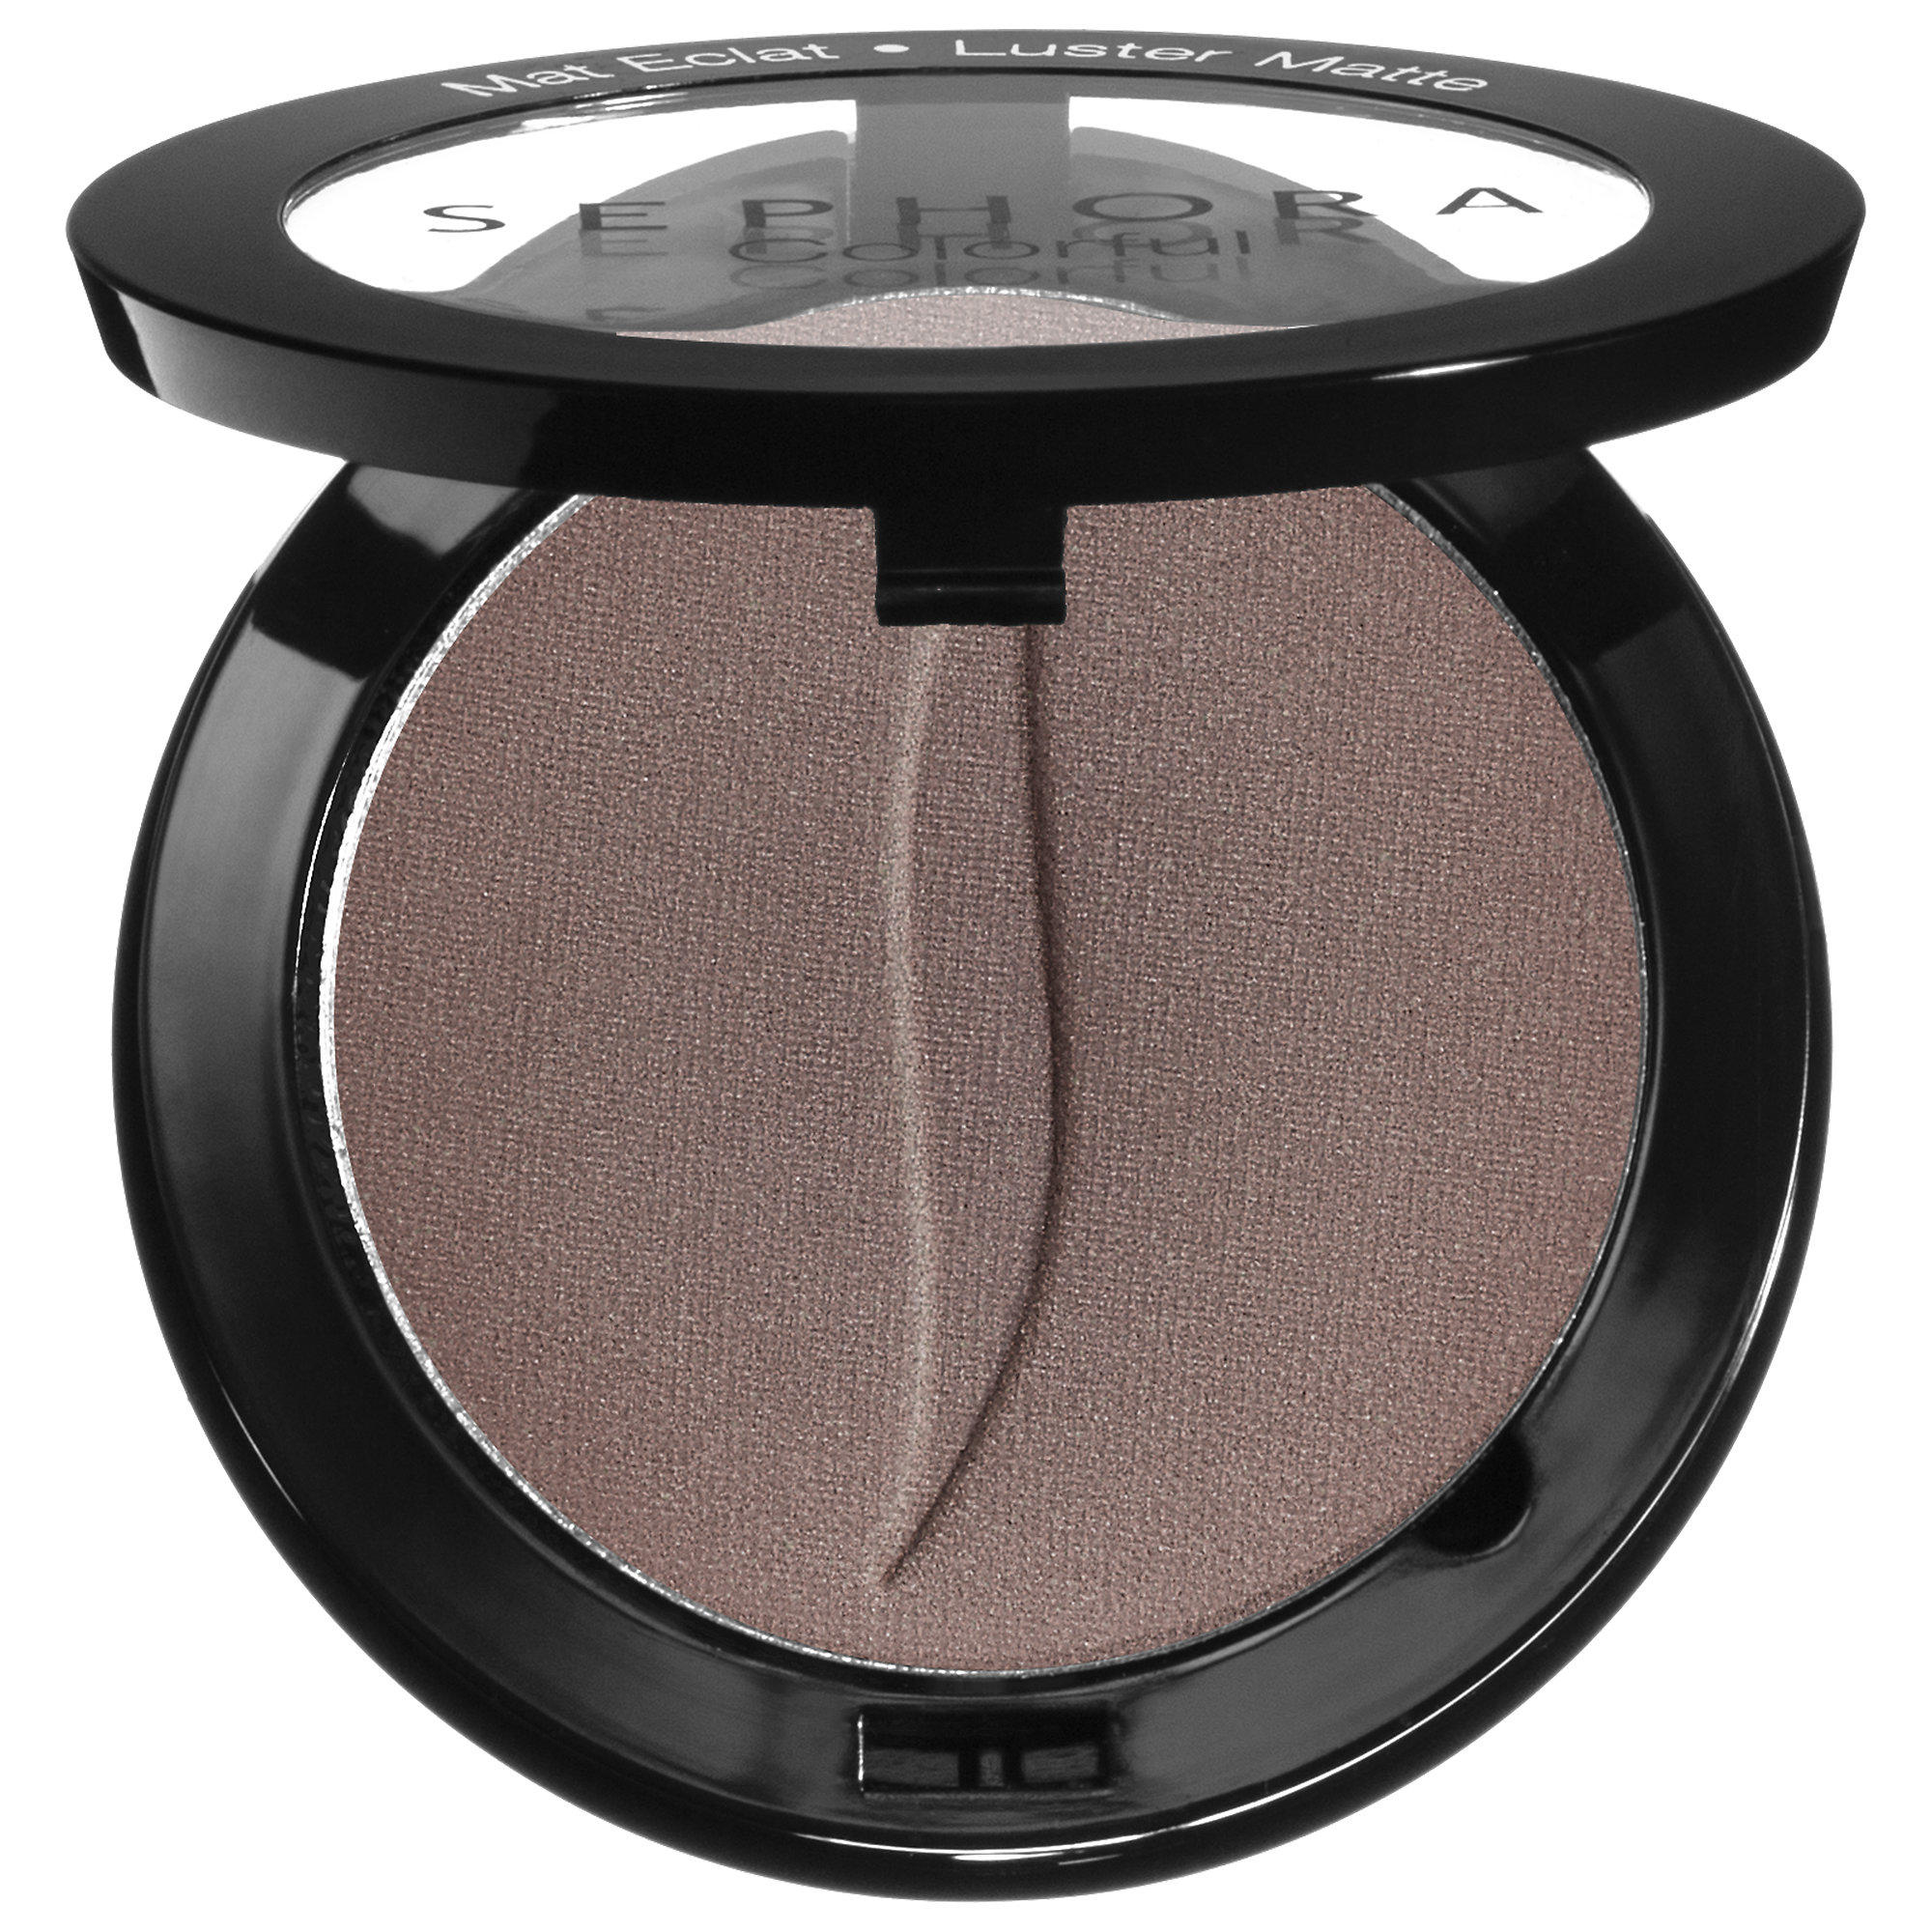 Sephora Colorful Eyeshadow Coffee Brown No. 18